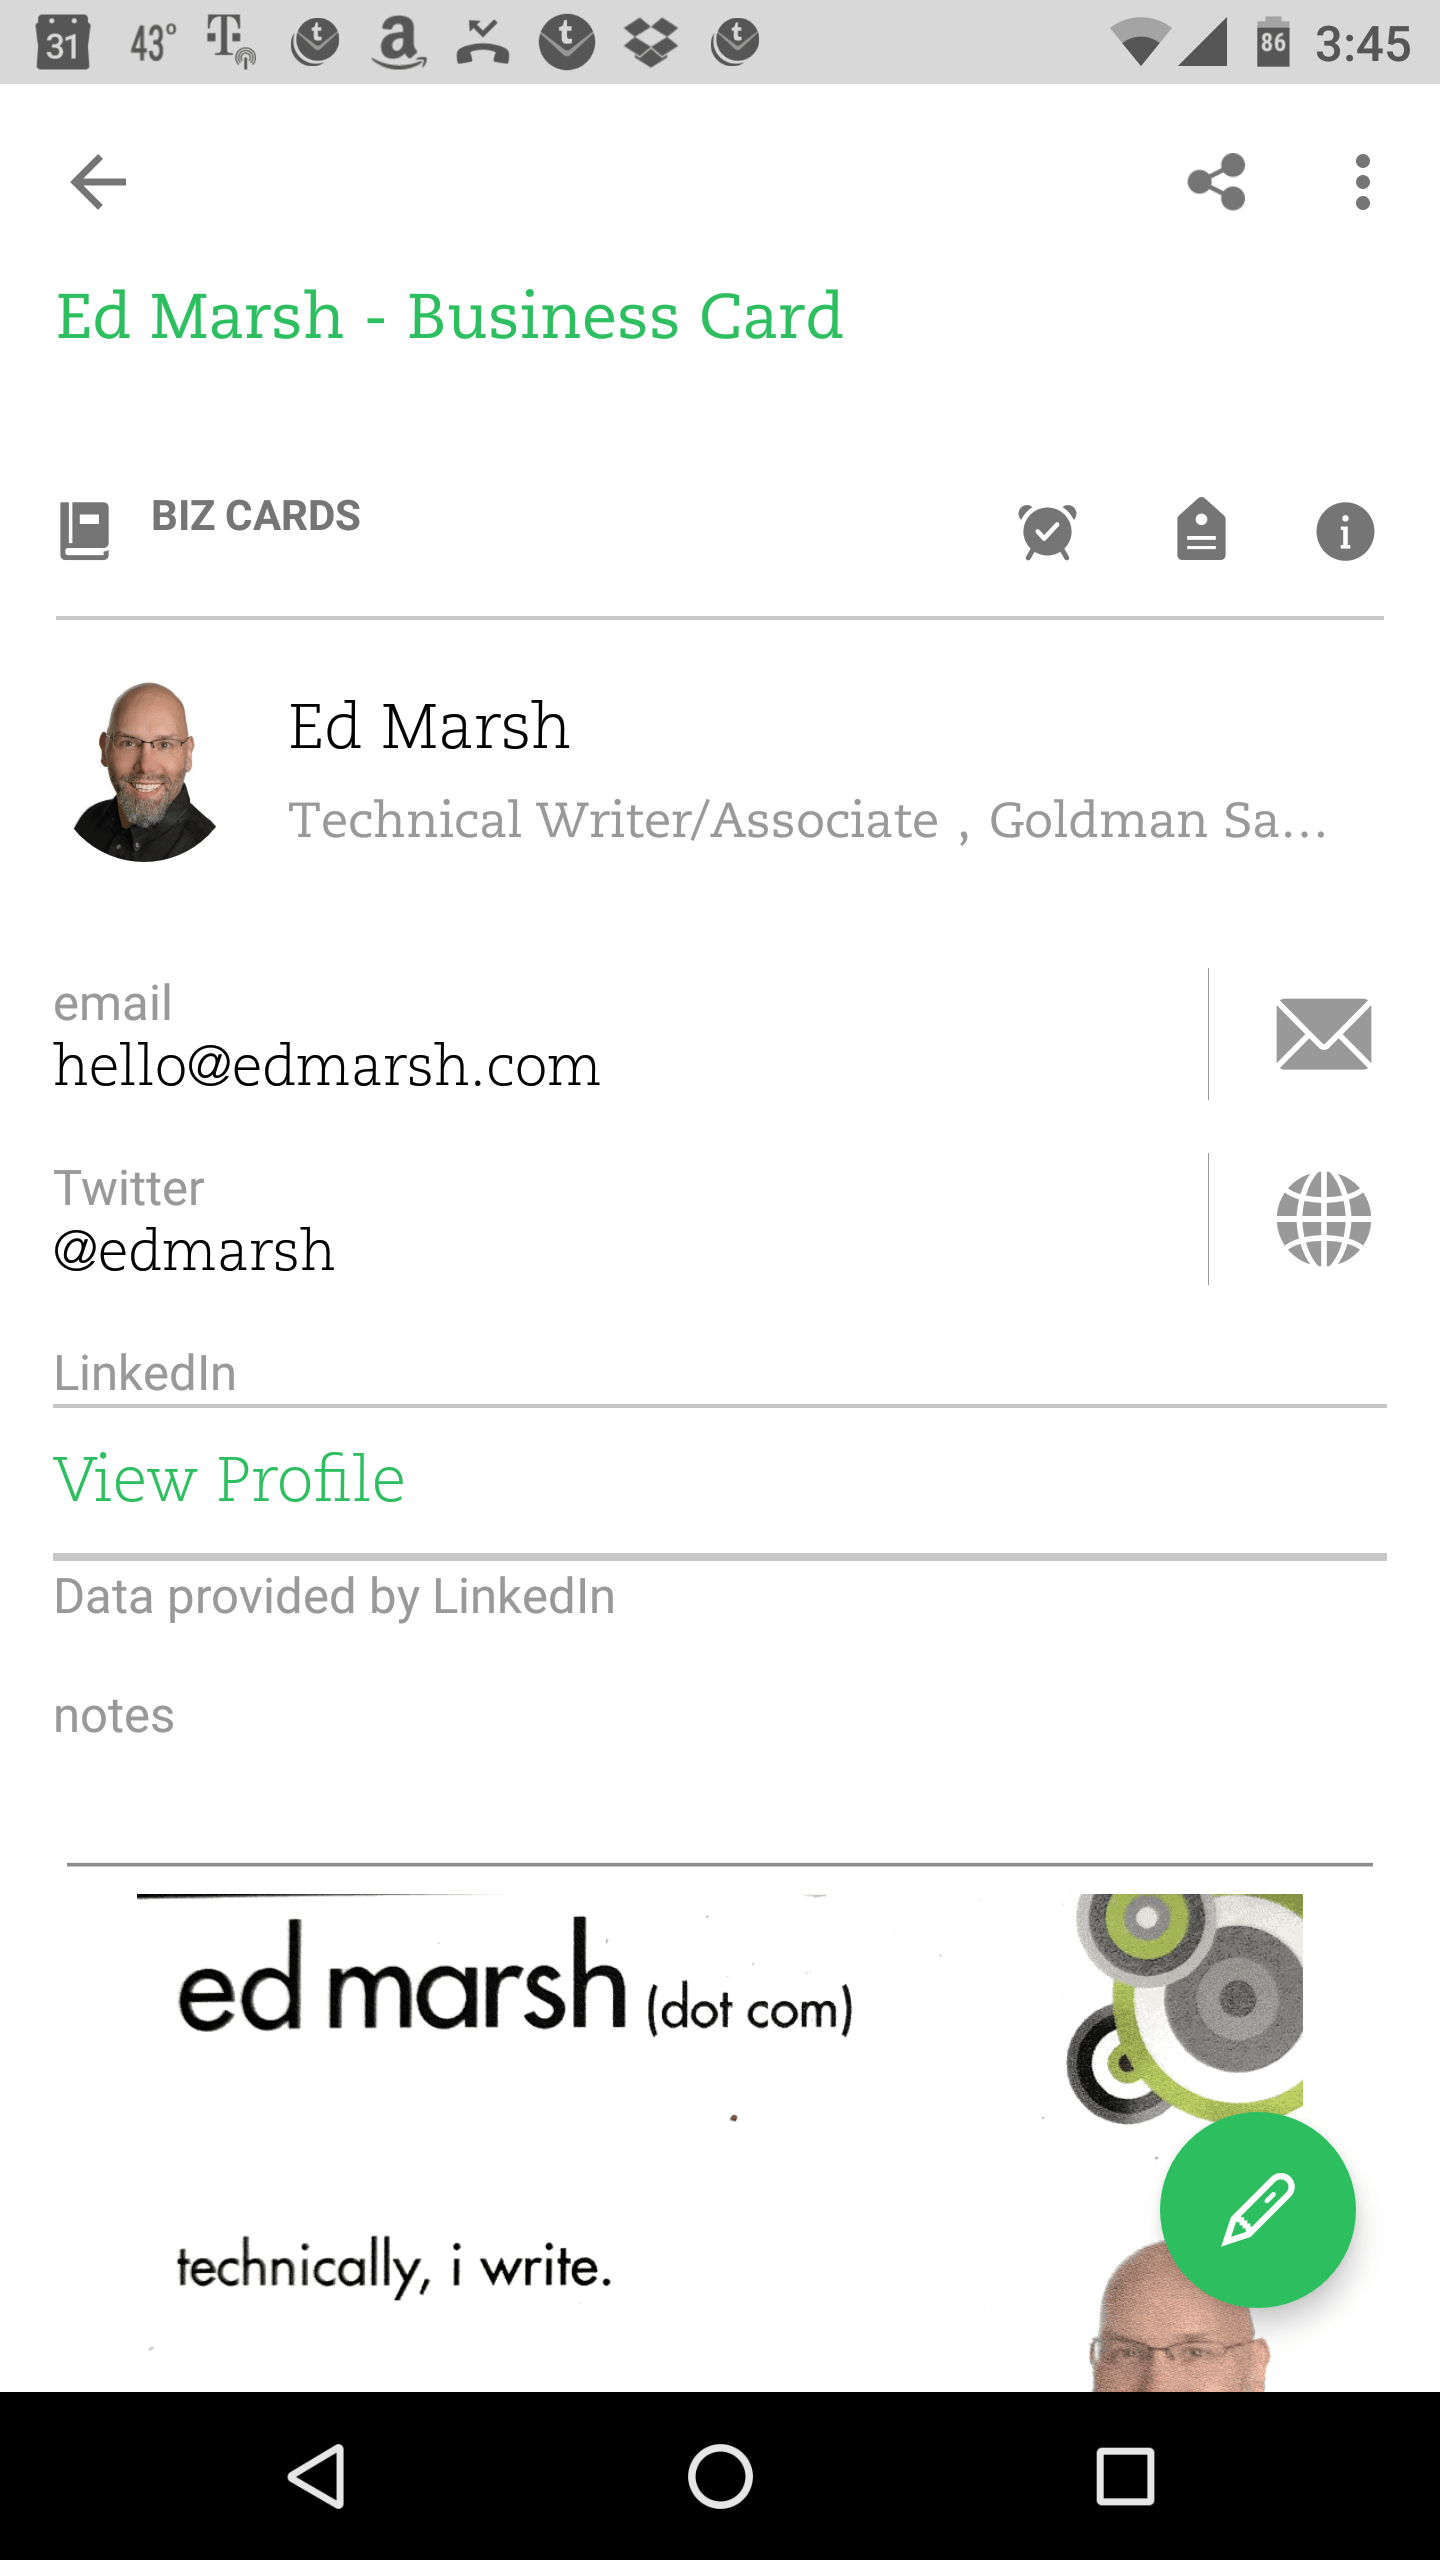 Evernote Archives - Ed Marsh